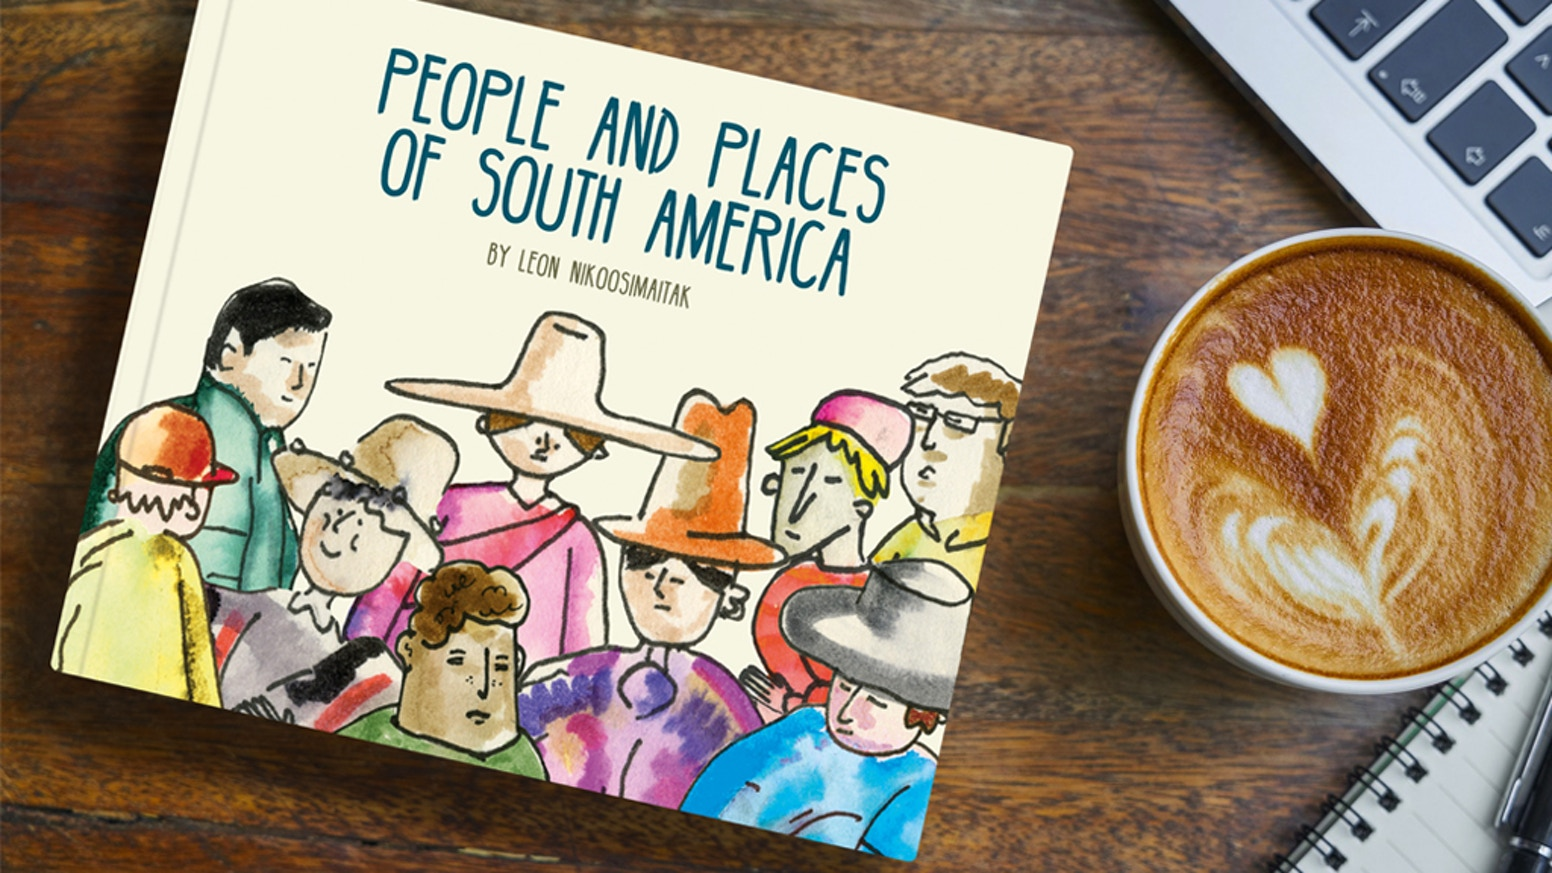 An interactive illustration book packed with 50+ drawings and some well-written copy.